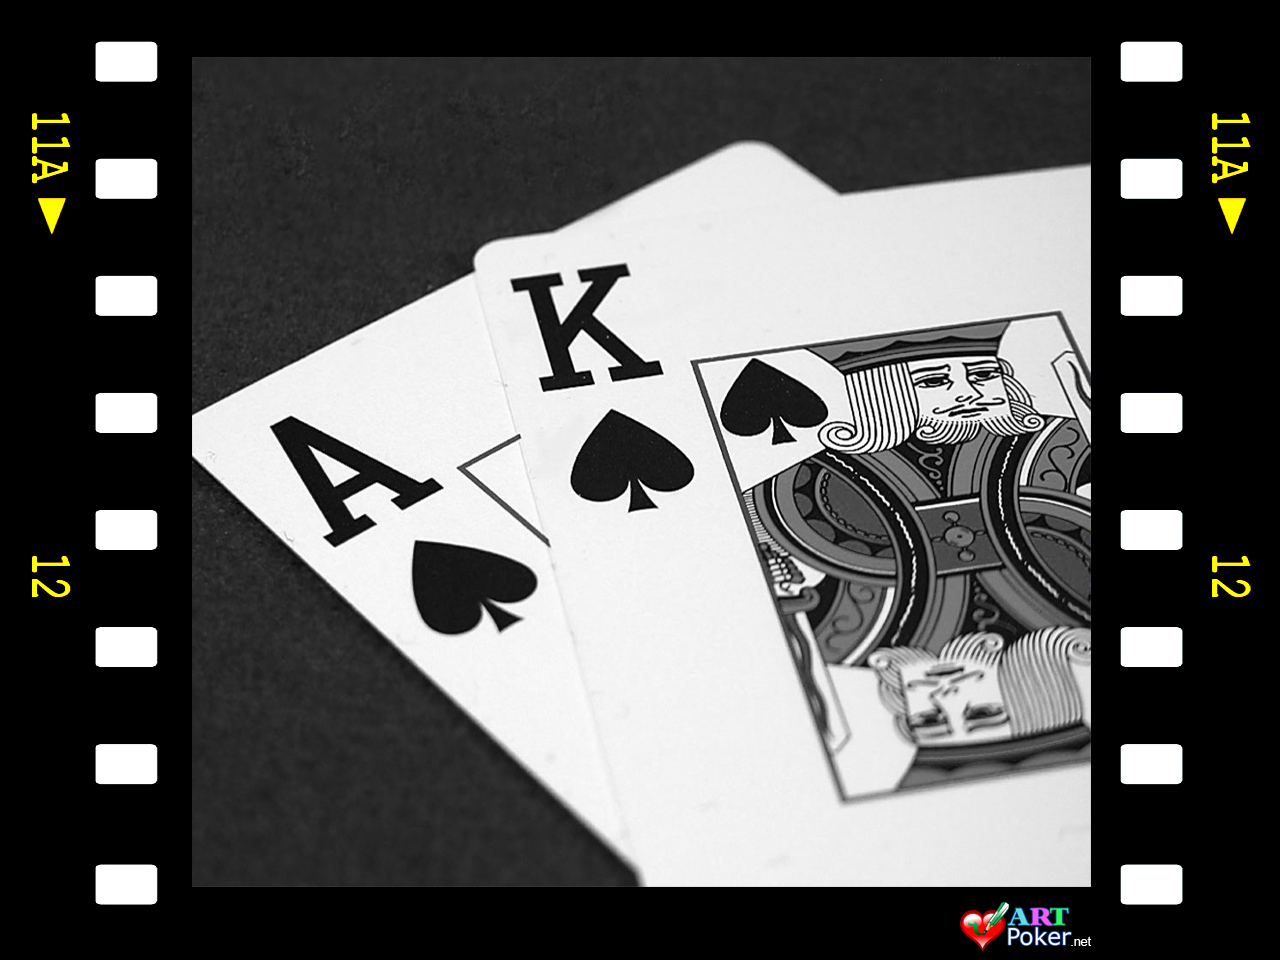 Free poker browser game